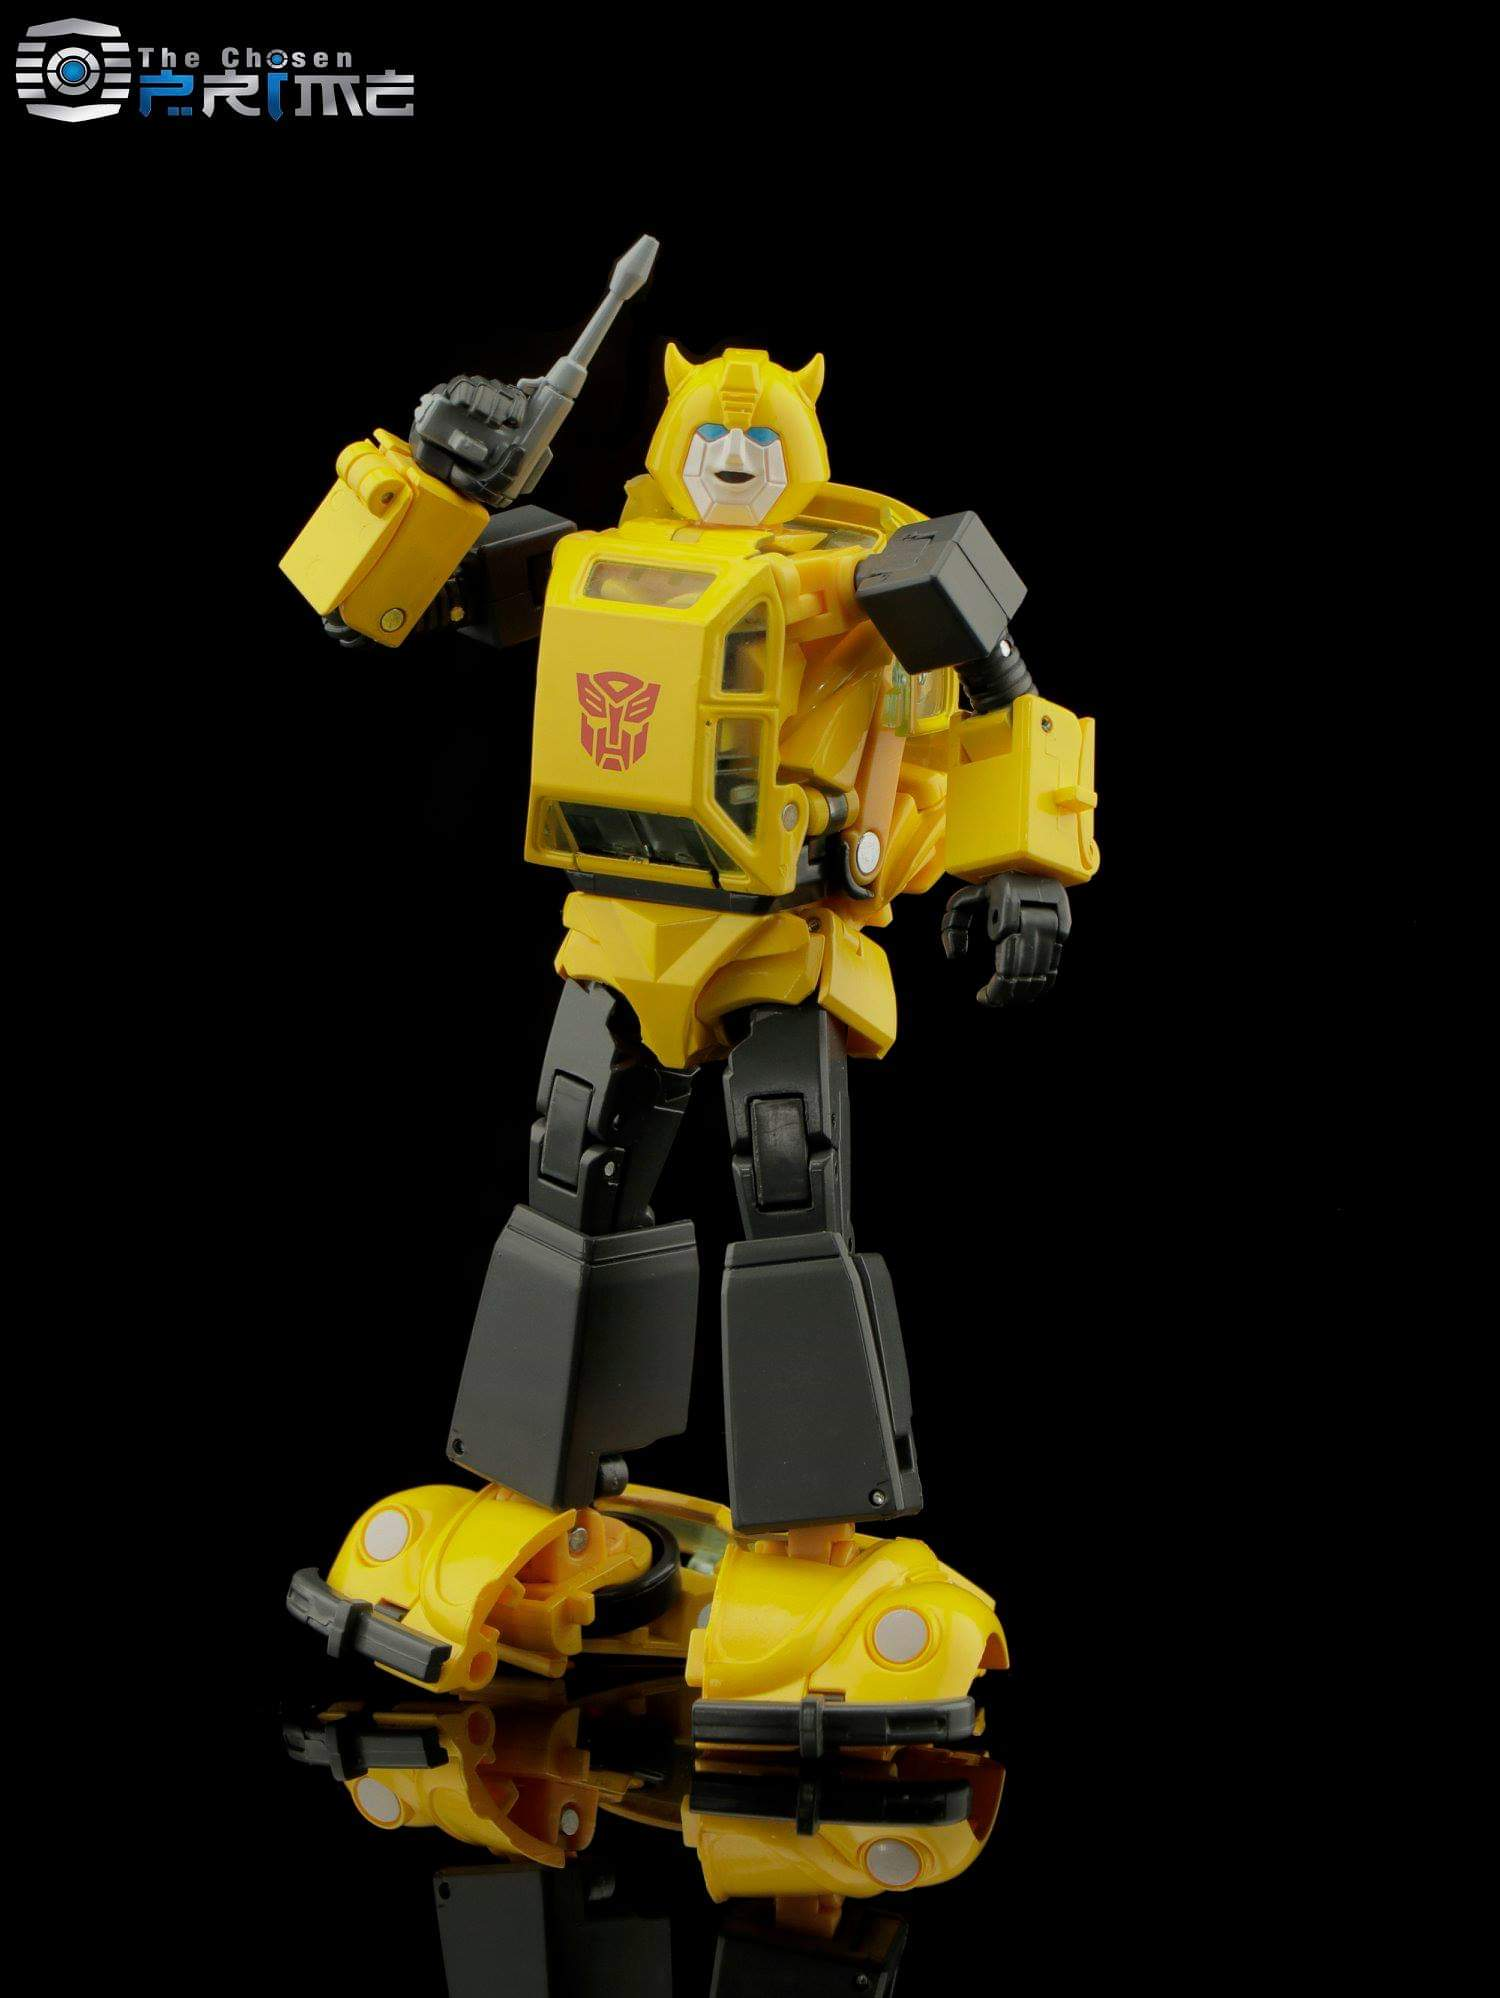 [Masterpiece] MP-45 Bumblebee/Bourdon v2.0 - Page 2 Q3YGX1Lz_o